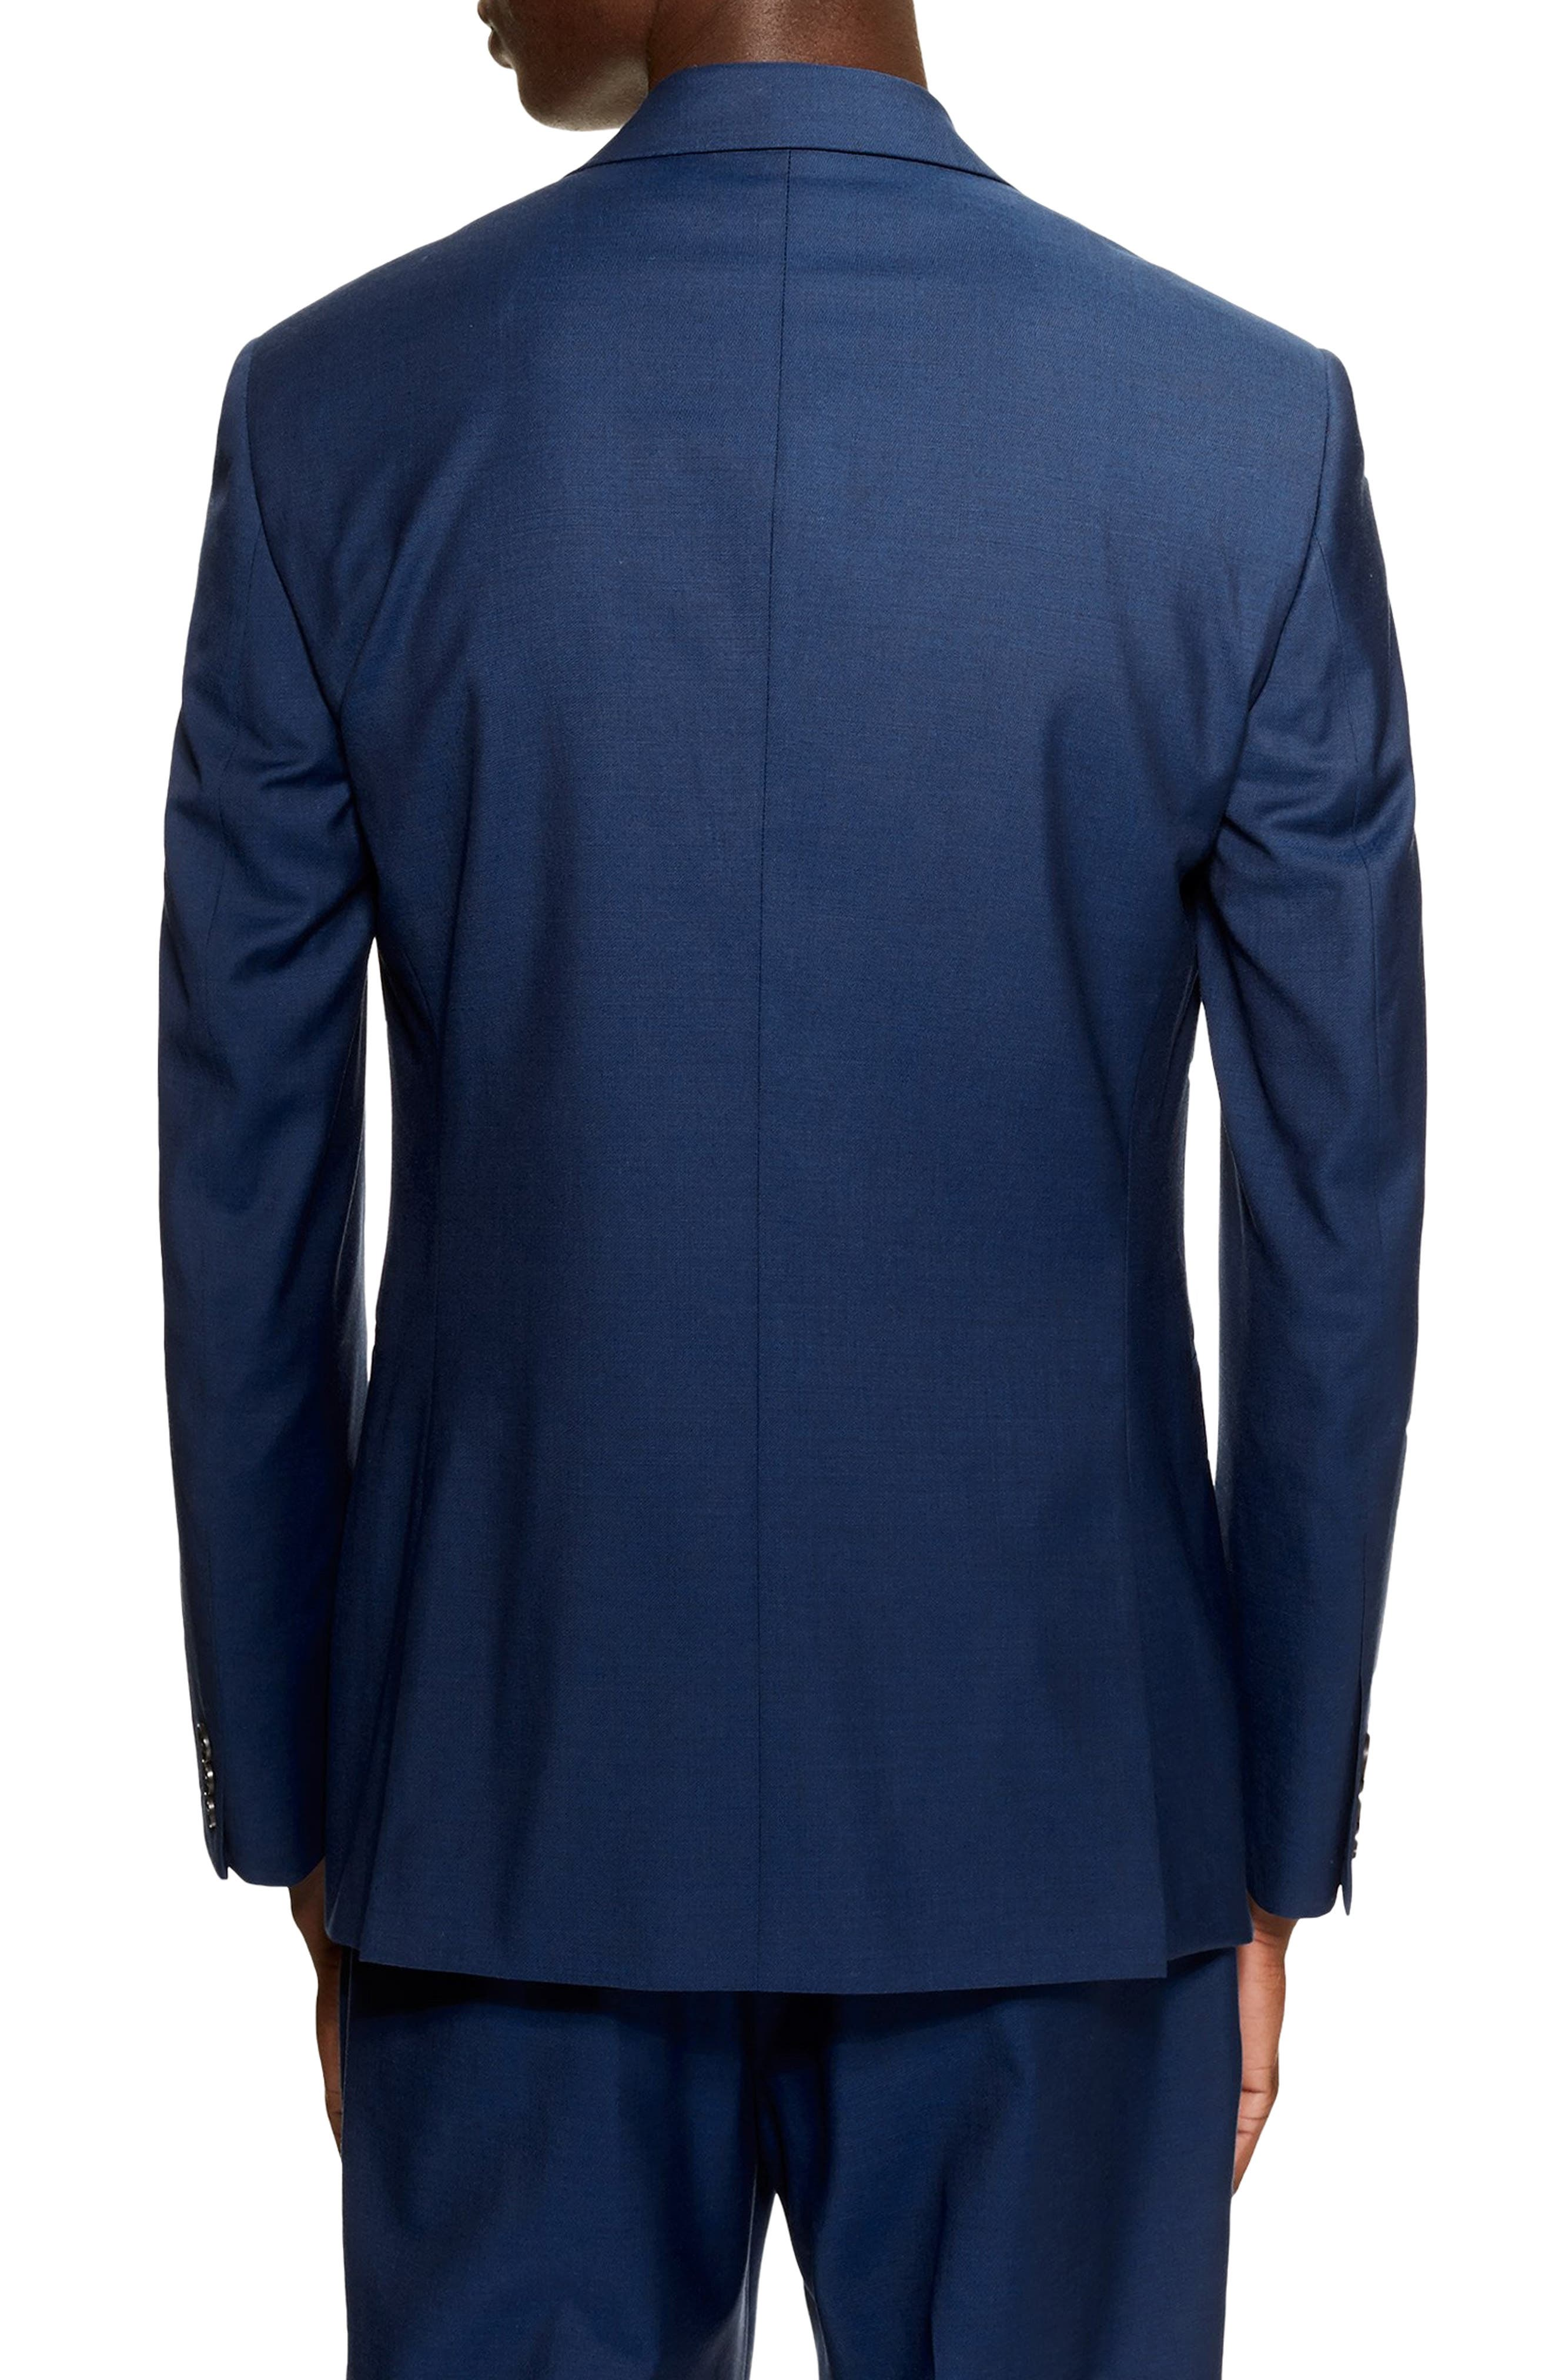 Casely Hayford Skinny Fit Suit Jacket,                             Alternate thumbnail 2, color,                             NAVY BLUE